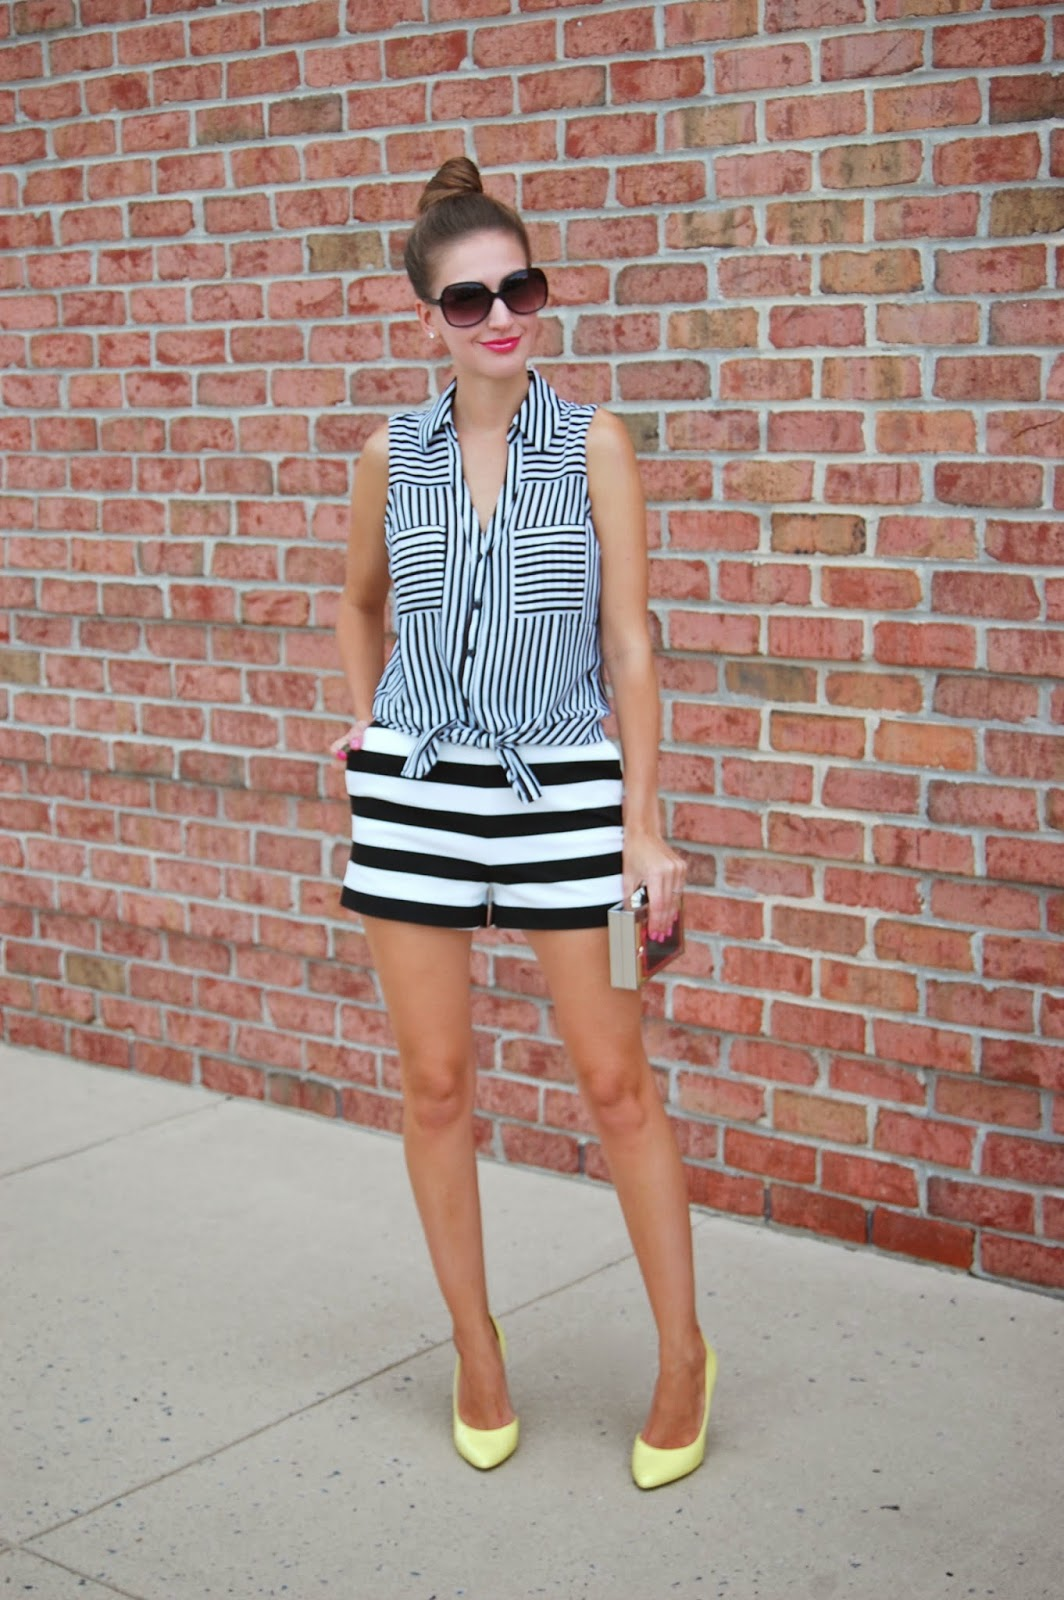 Wearing vertical and horizontal stripes. Express Striped Shorts and Express Striped Sleeveless Portofino Blouse